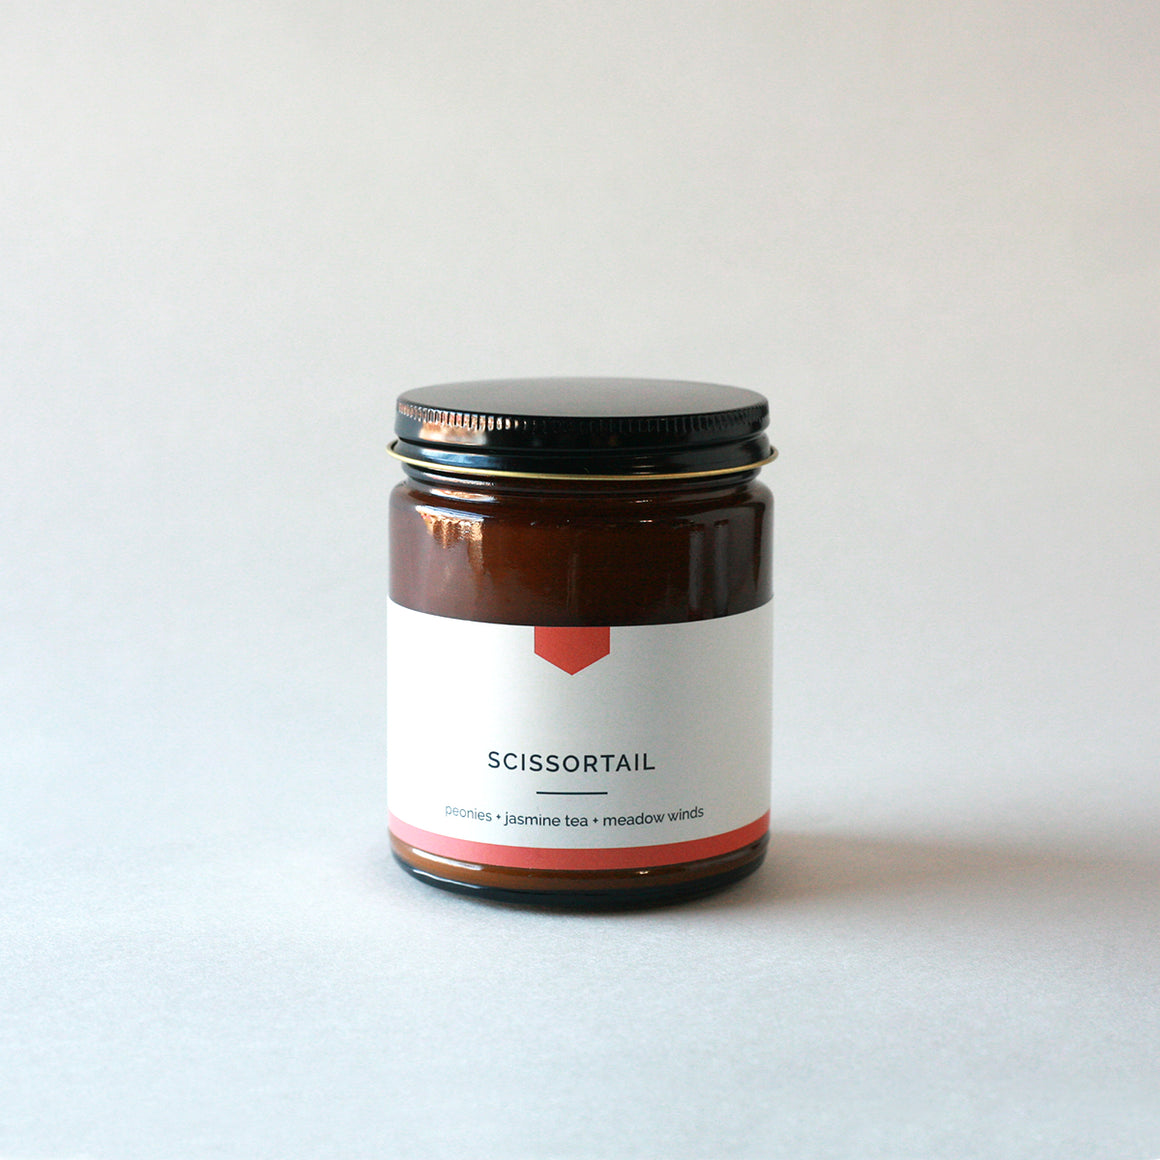 SCISSORTAIL Amber Love Soy Candle